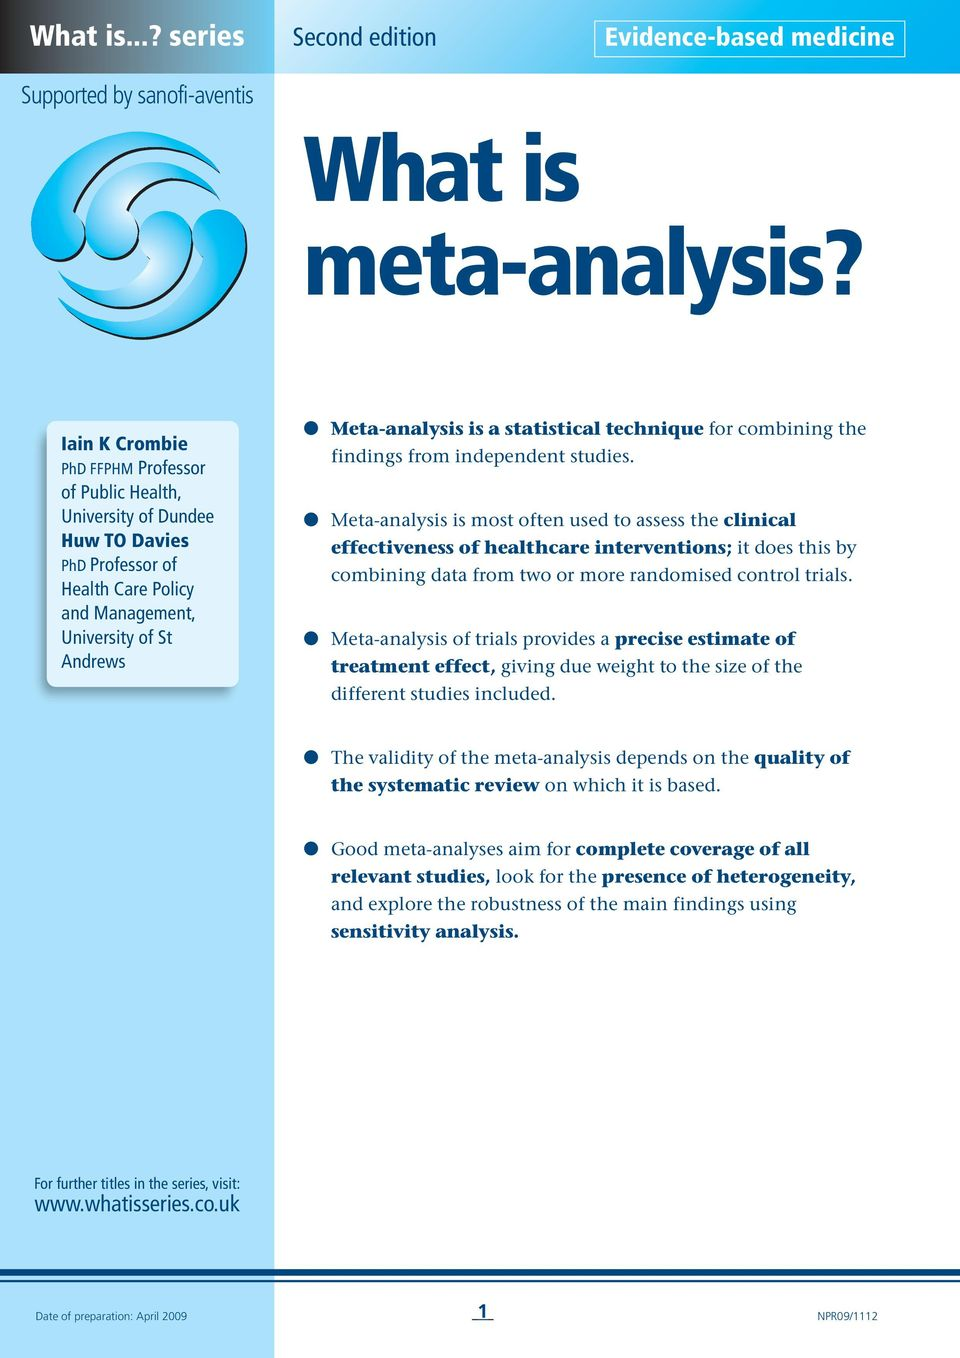 Meta-analysis is most often used to assess the clinical effectiveness of healthcare interventions; it does this by combining data from two or more randomised control trials.